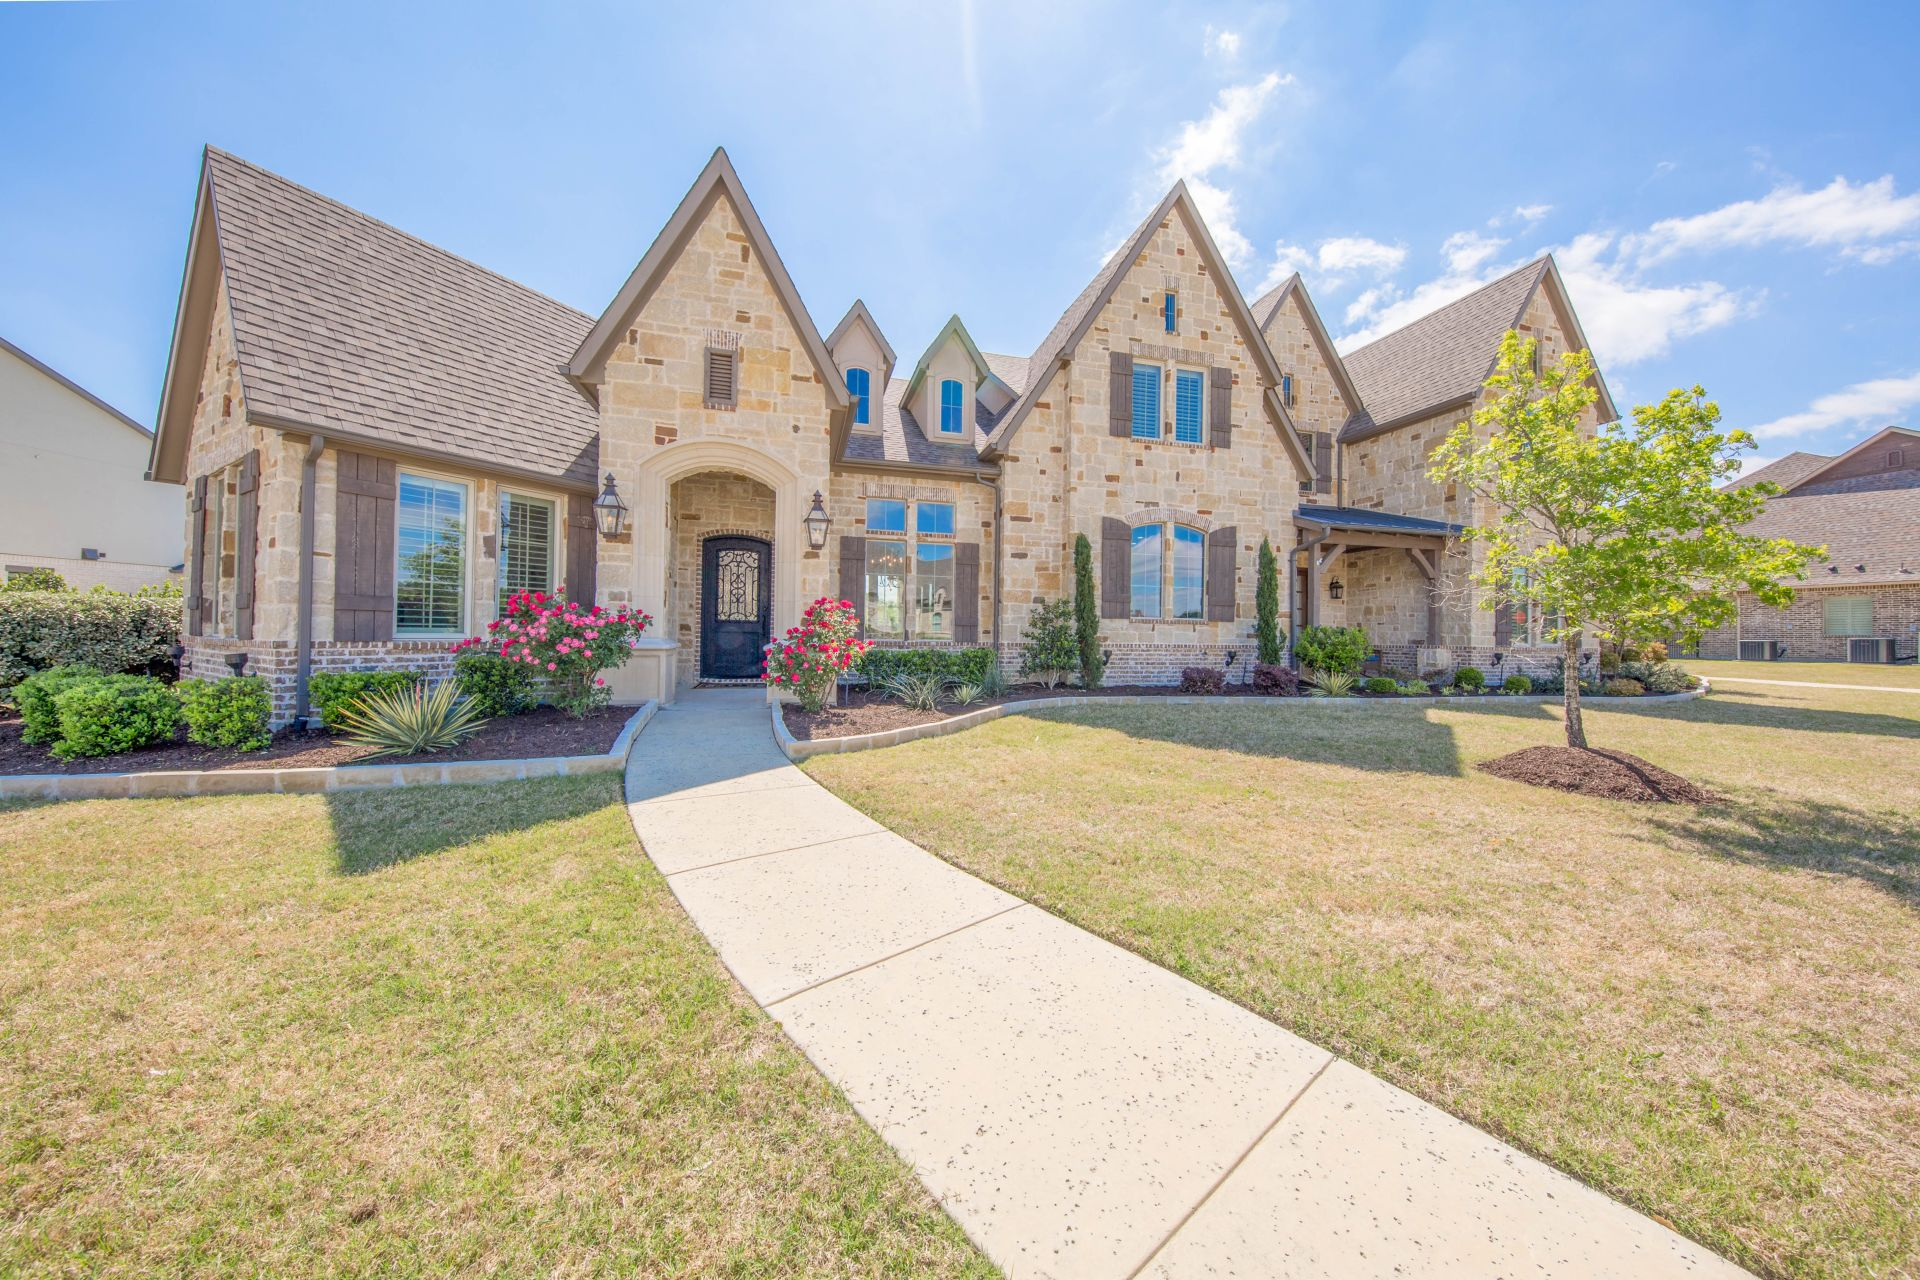 108 Brentwood Dr. in Heath